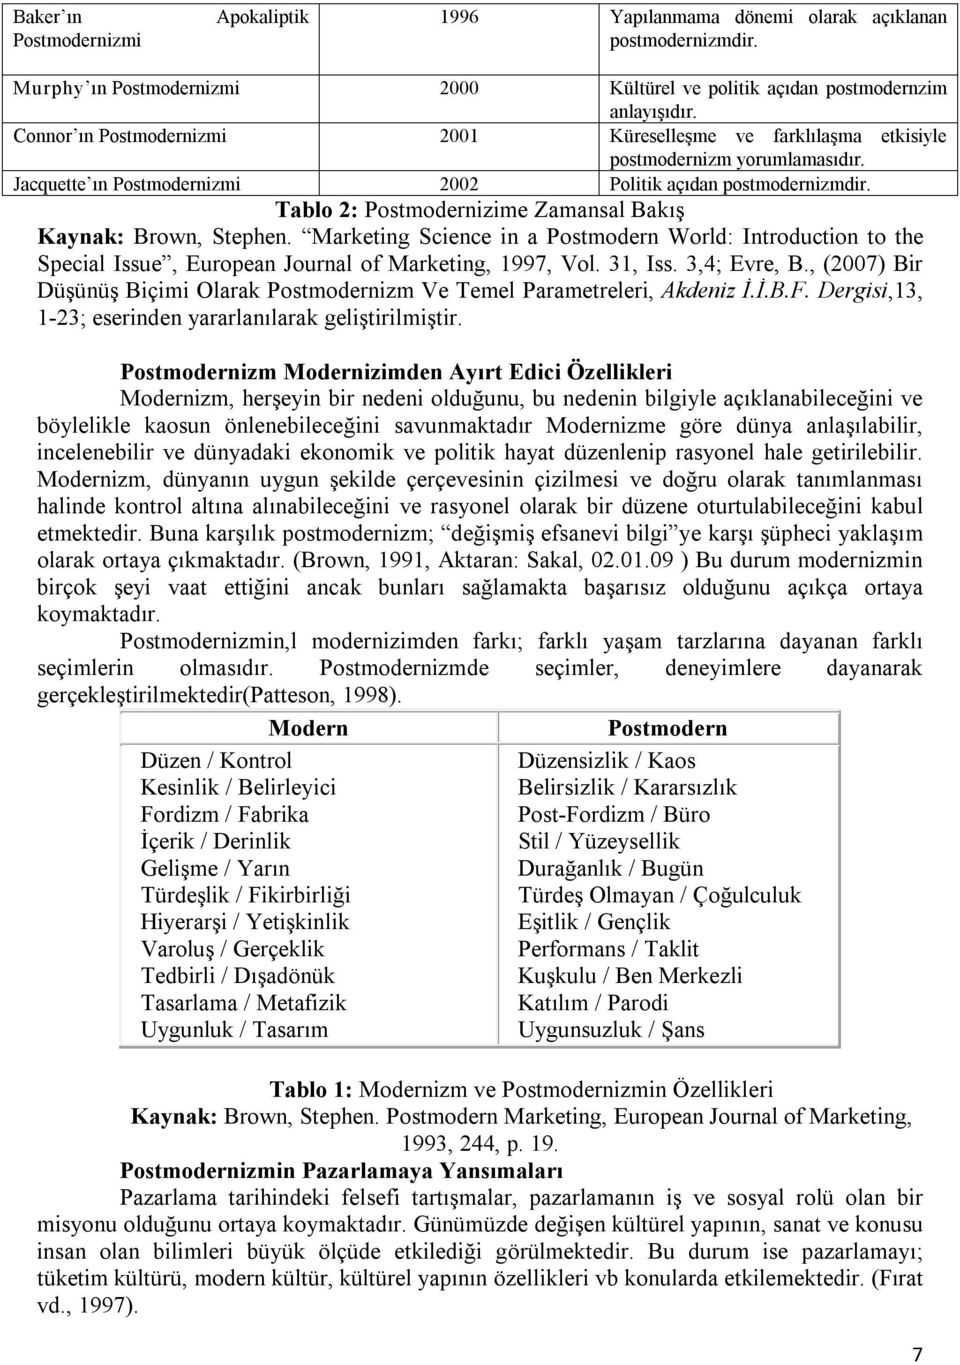 Tablo 2: Postmodernizime Zamansal Bakış Kaynak: Brown, Stephen. Marketing Science in a Postmodern World: Introduction to the Special Issue, European Journal of Marketing, 1997, Vol. 31, Iss.